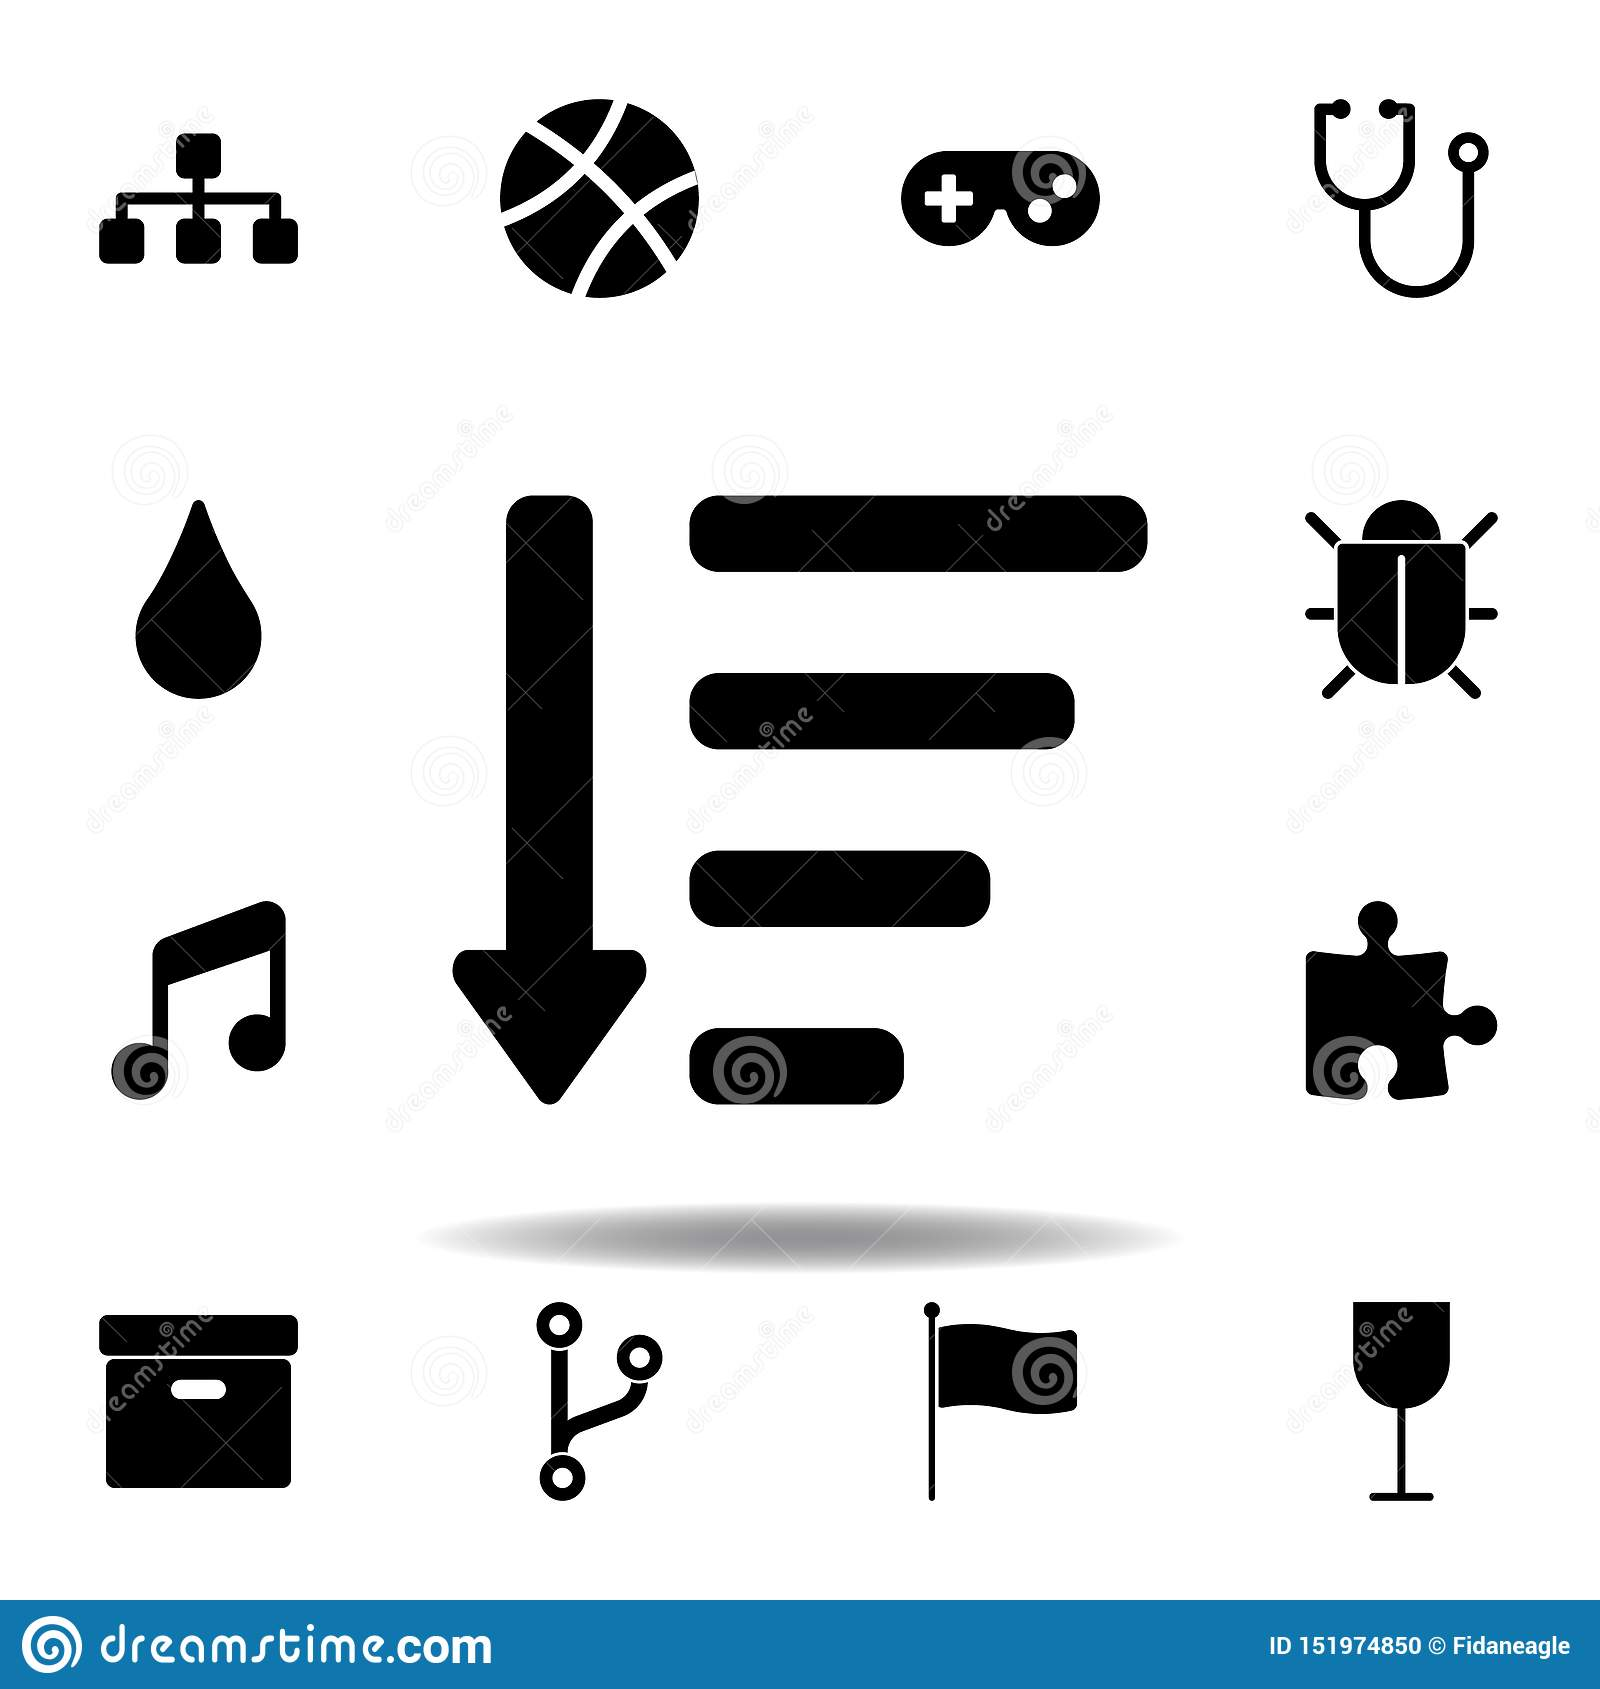 sitemap icon. Signs and symbols can be used for web, logo, mobile app, UI, UX